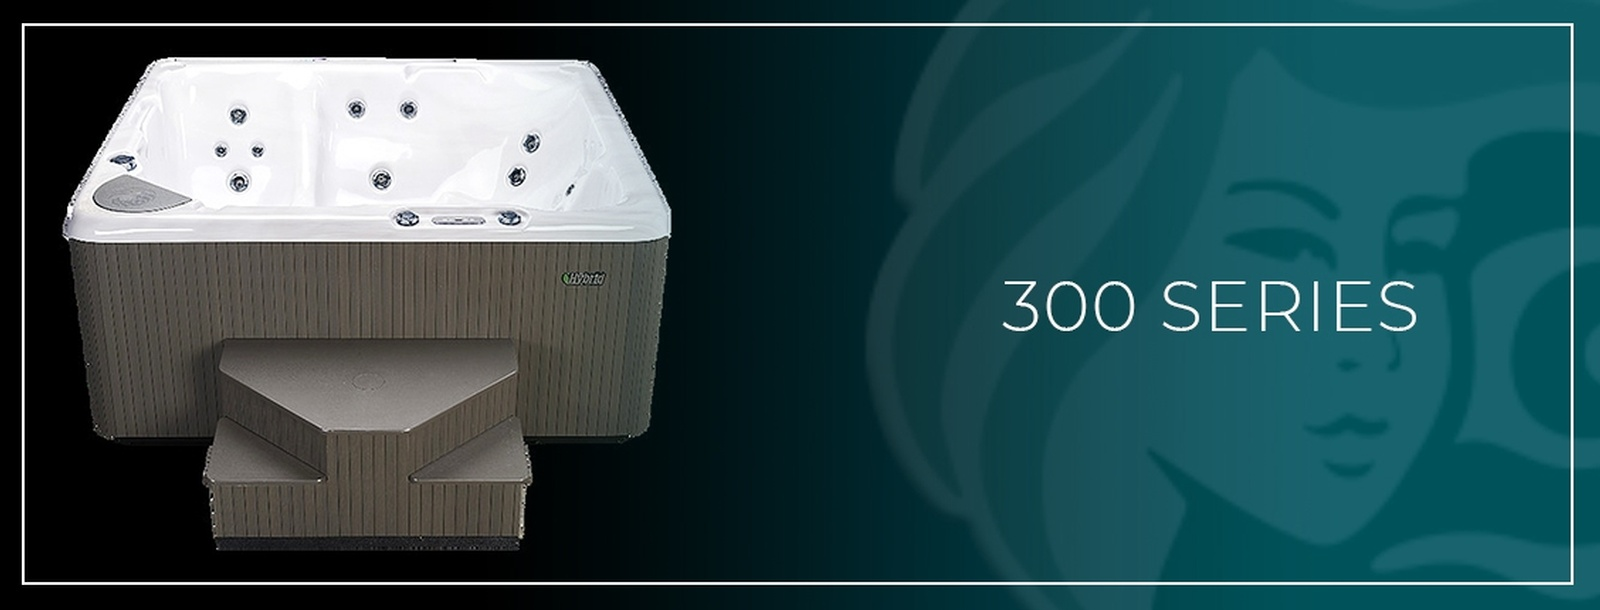 Buy Beachcomber 300 Series Hot Tub Online at Beachcomber Lloydminster